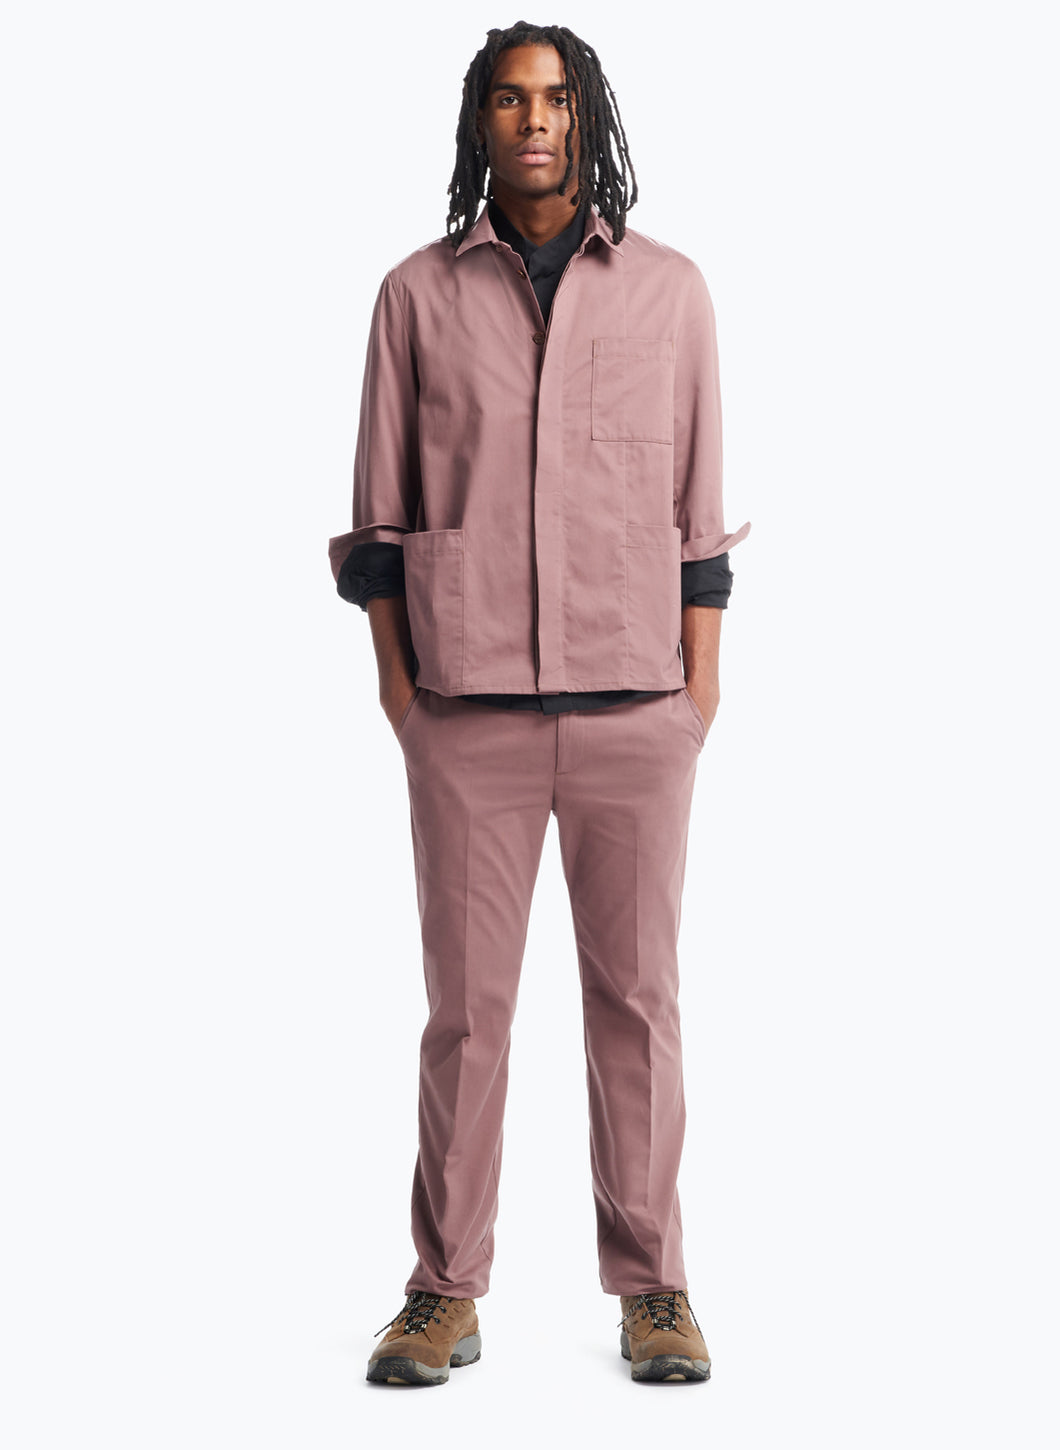 Overshirt with Front Cuts in Copper Pink Cotton Satin